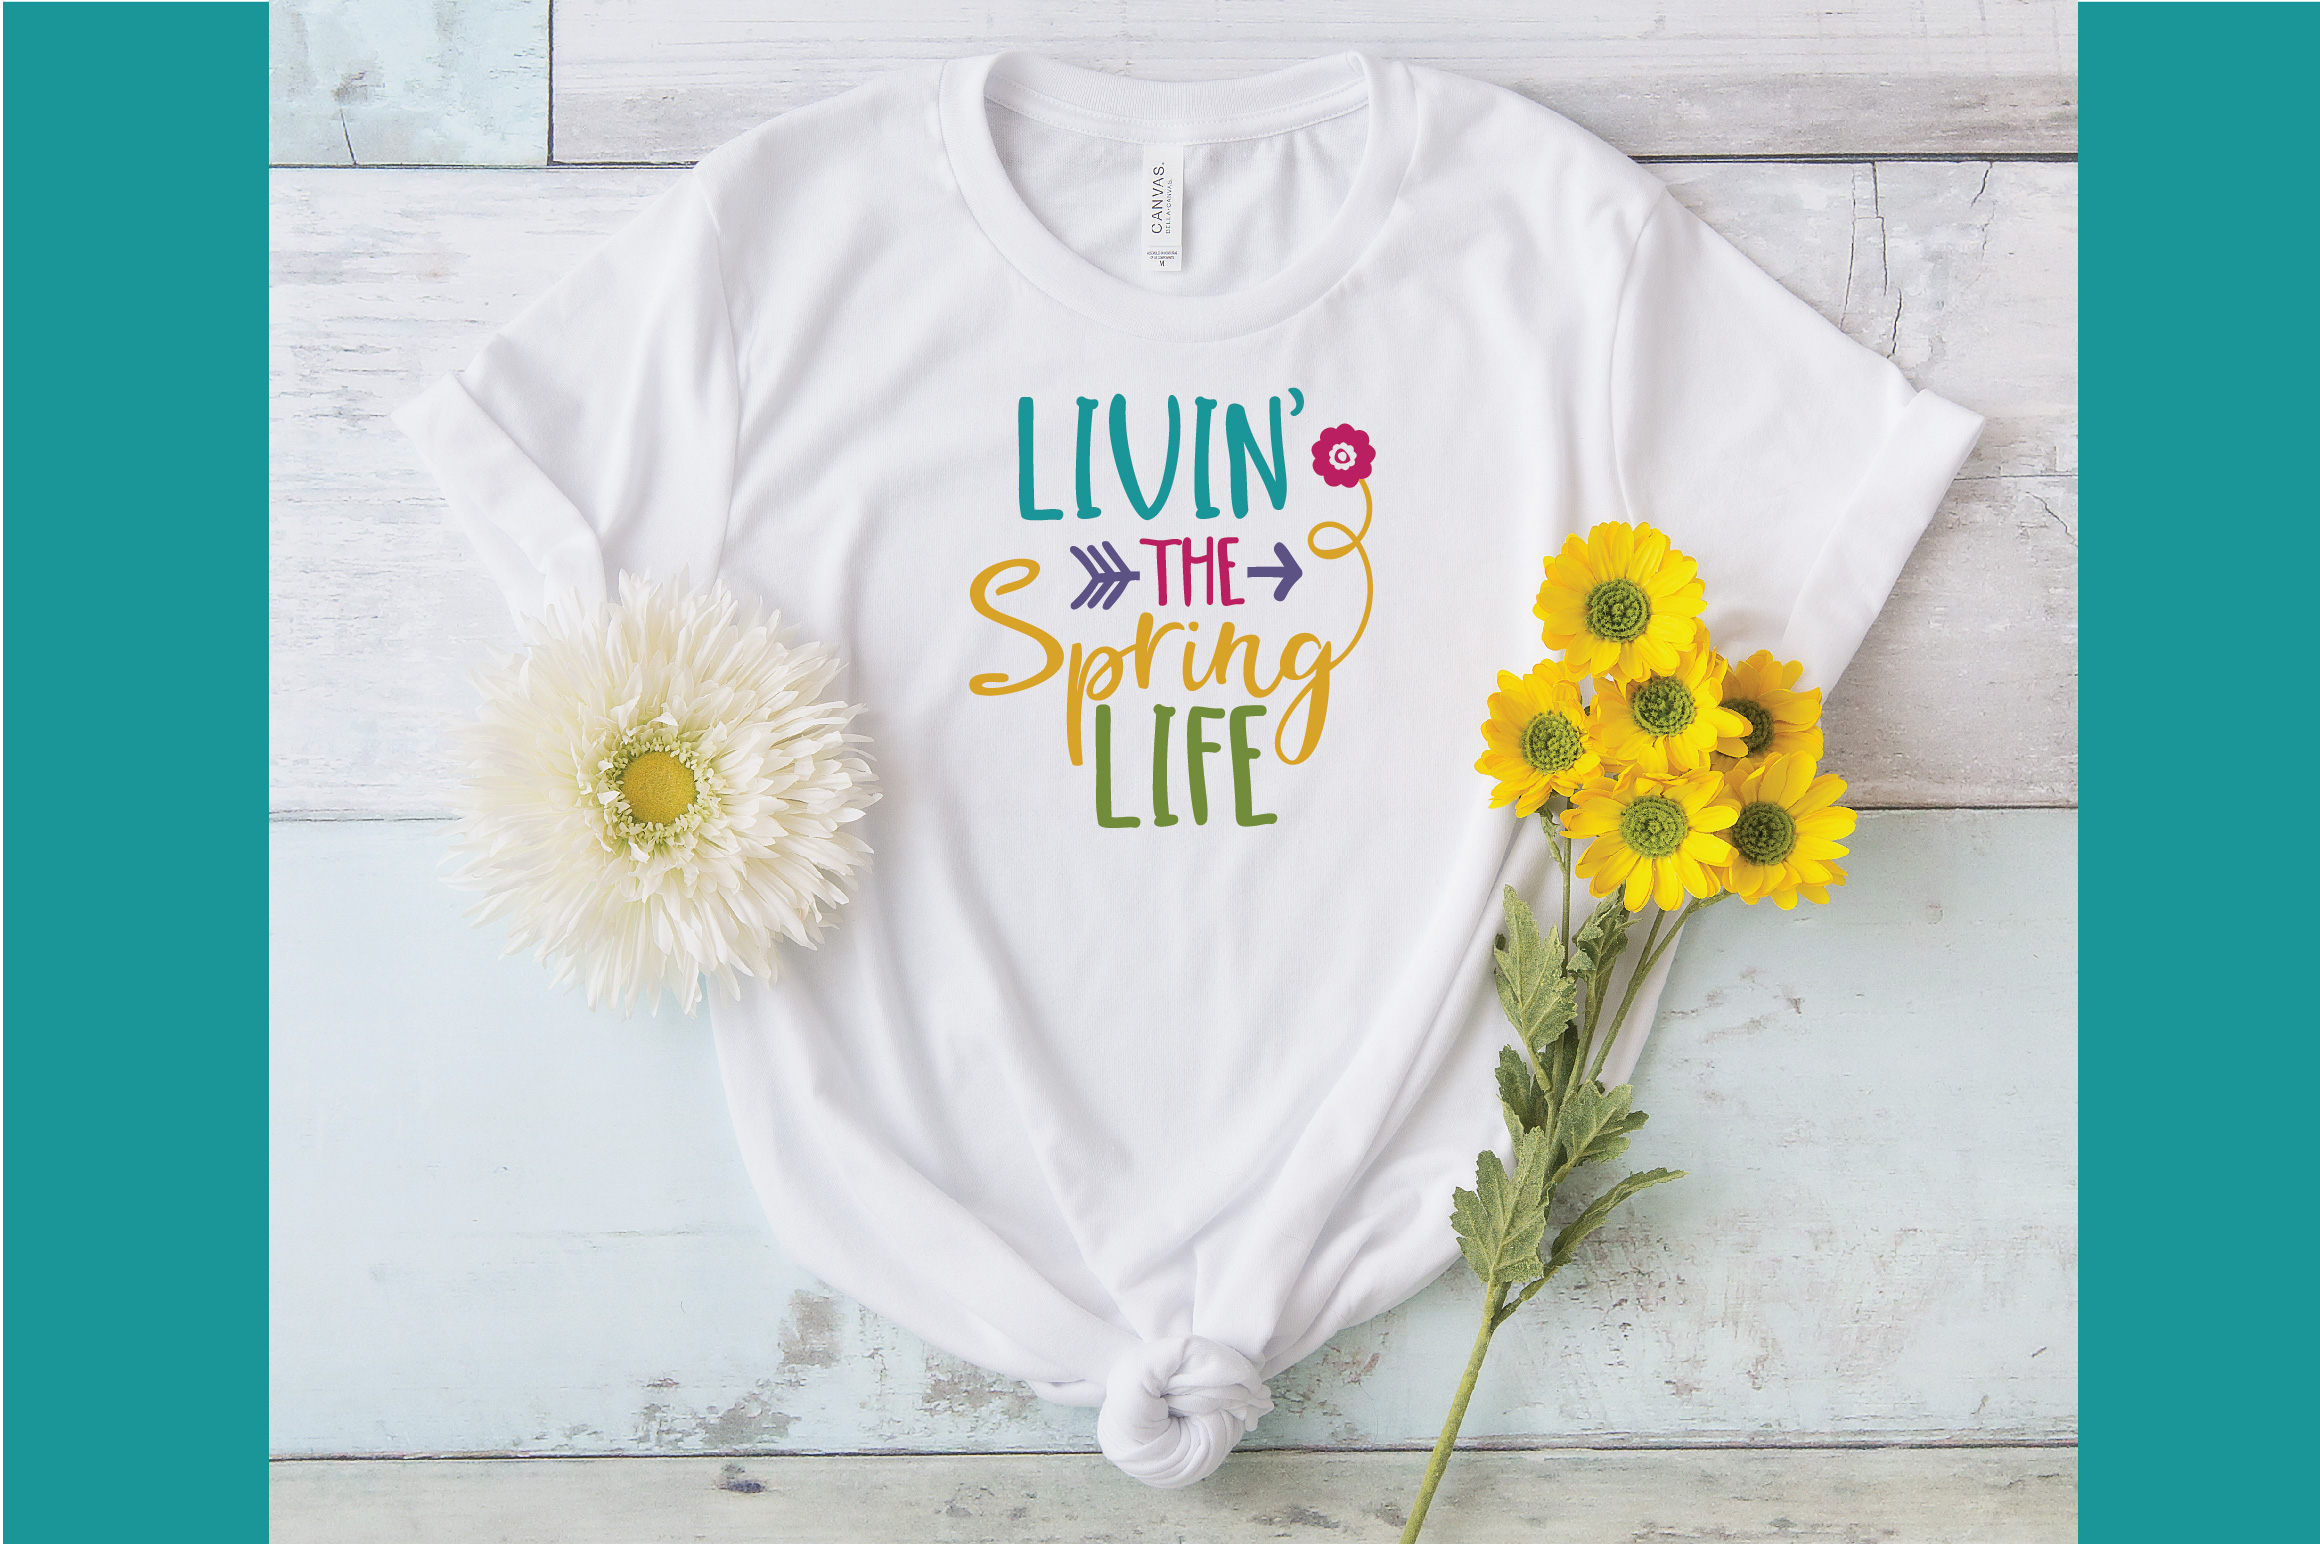 Livin' the Spring Life SVG Cut File - Spring SVG DXF EPS PNG example image 5